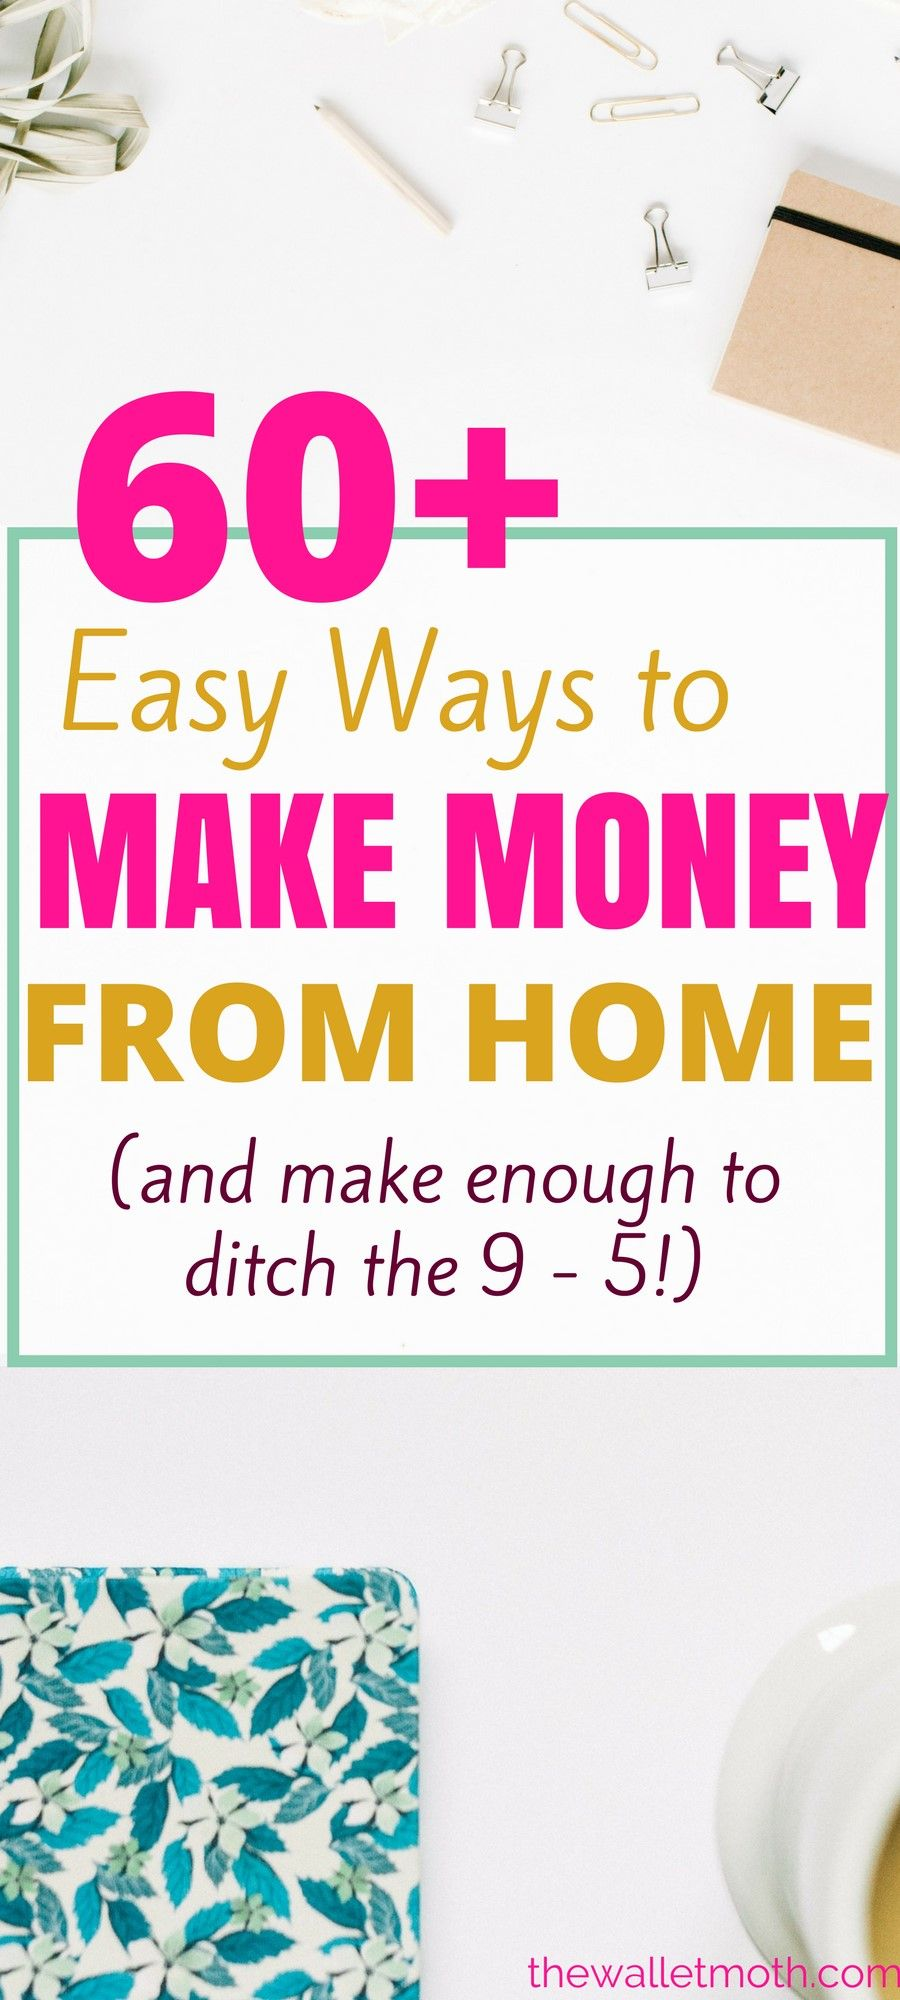 Copy Paste Earn Money - These ideas for making money from home are ...